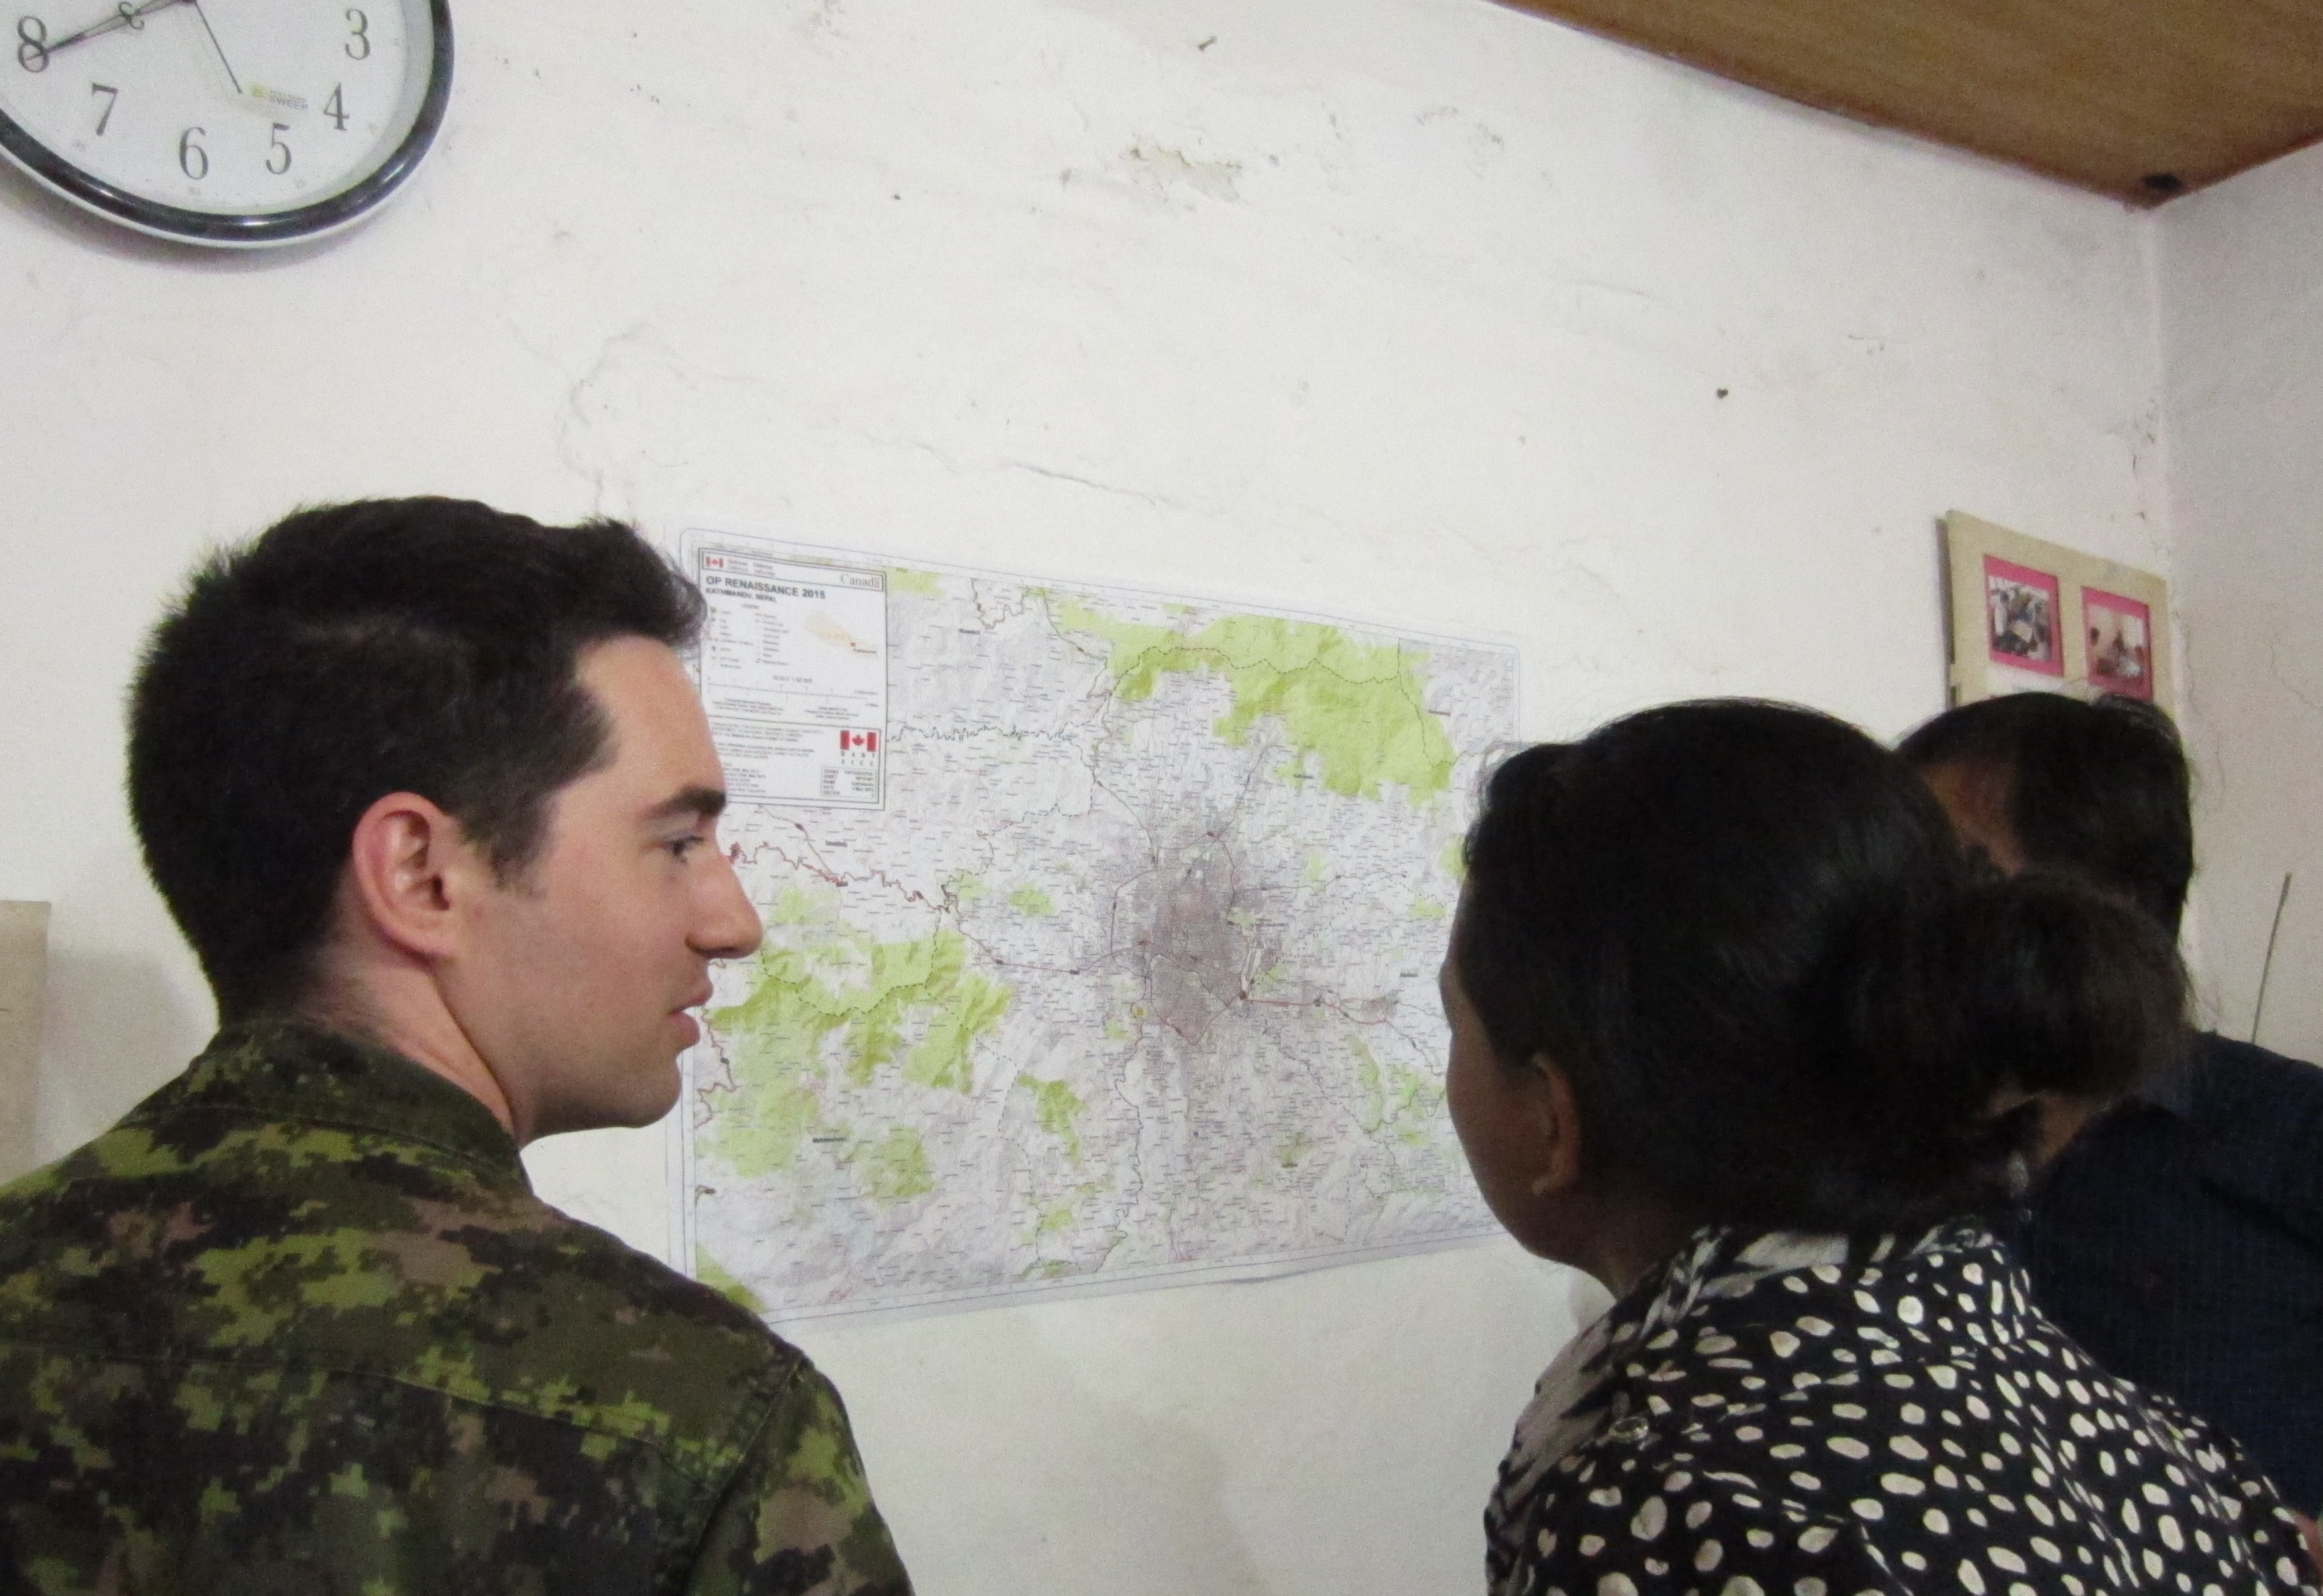 Nepal. 7 May 2015 – Master-Corporal Denis Carièrre, a geomatics technician from the DART talks about Nepal mapping with members of Kathmandu Living Labs, a group of young people working to harness human potential and creativity by leveraging open data and civic technology on May 7, 2015. (Photo: Captain Gabriel Rousseau, Canadian Forces Combat Camera)